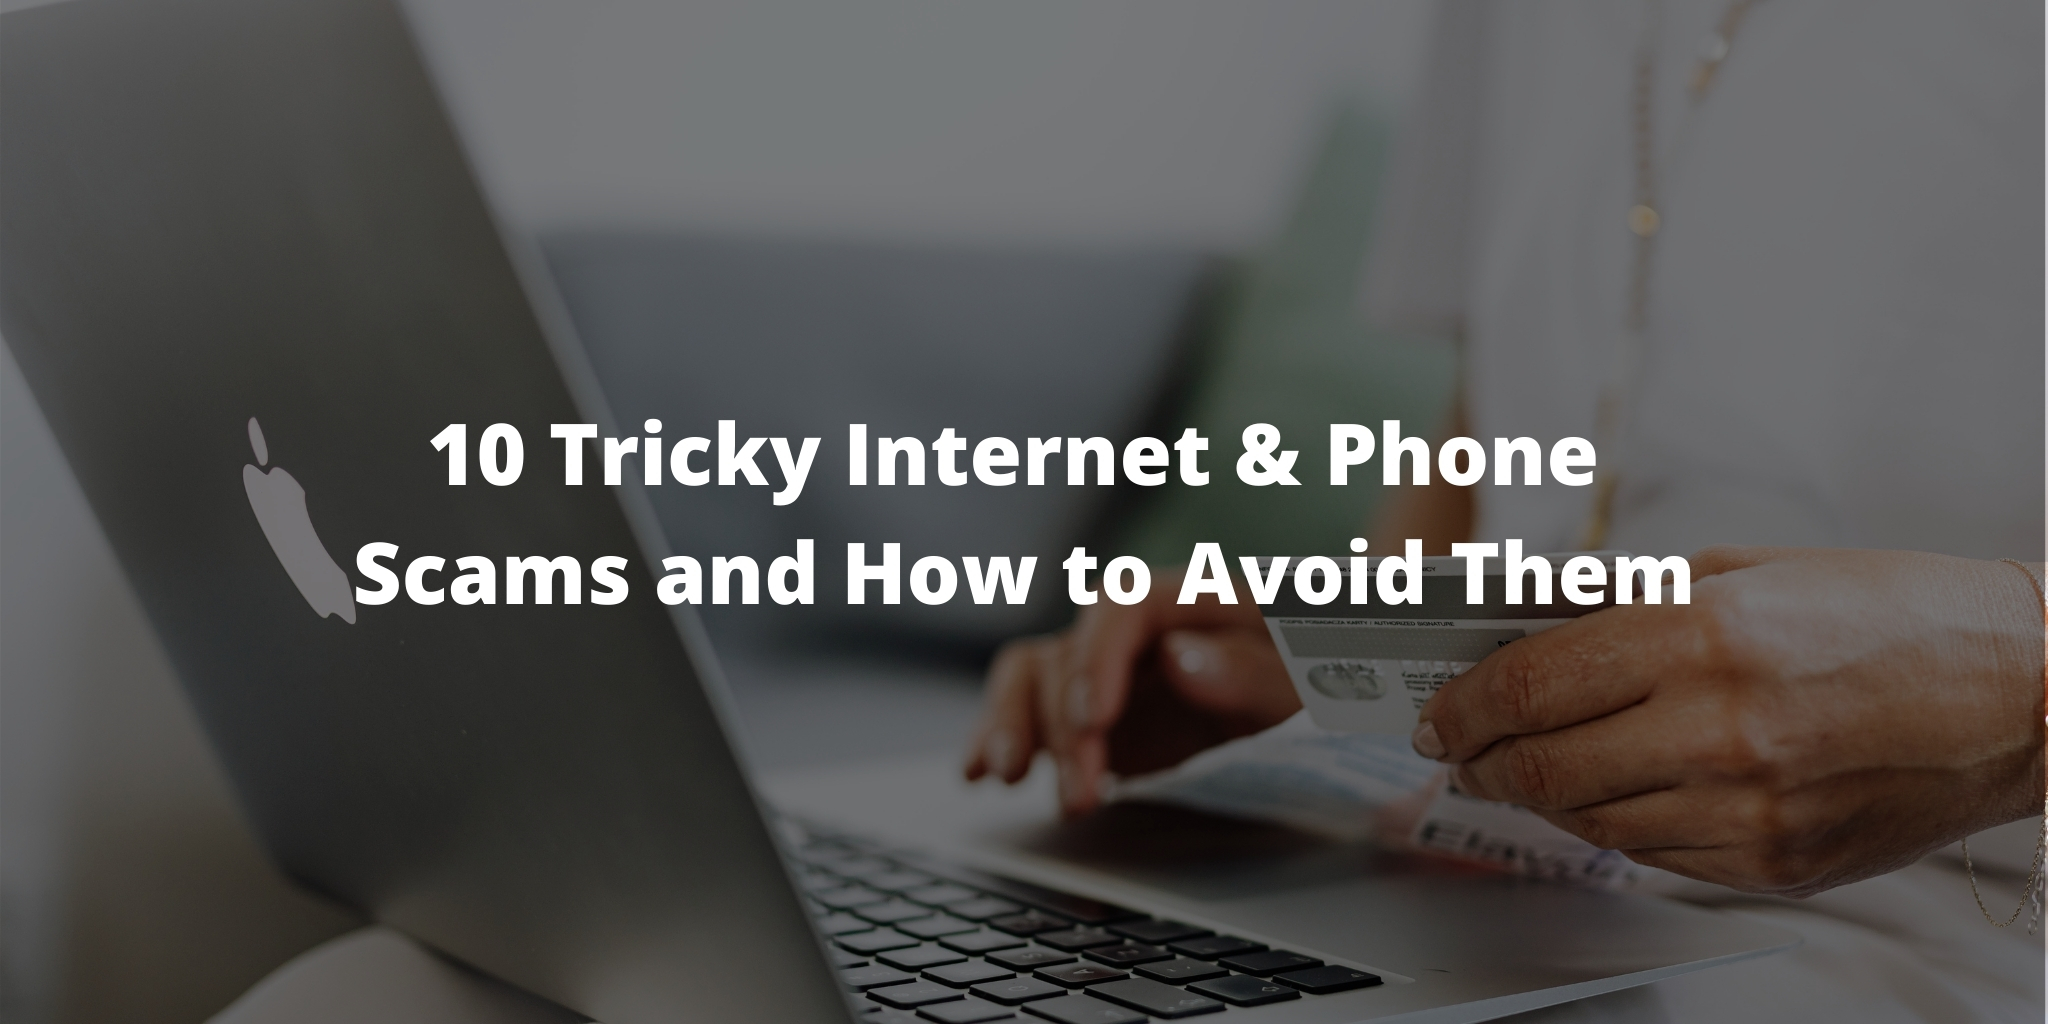 10 Tricky Internet & Phone Scams and How to Avoid Them